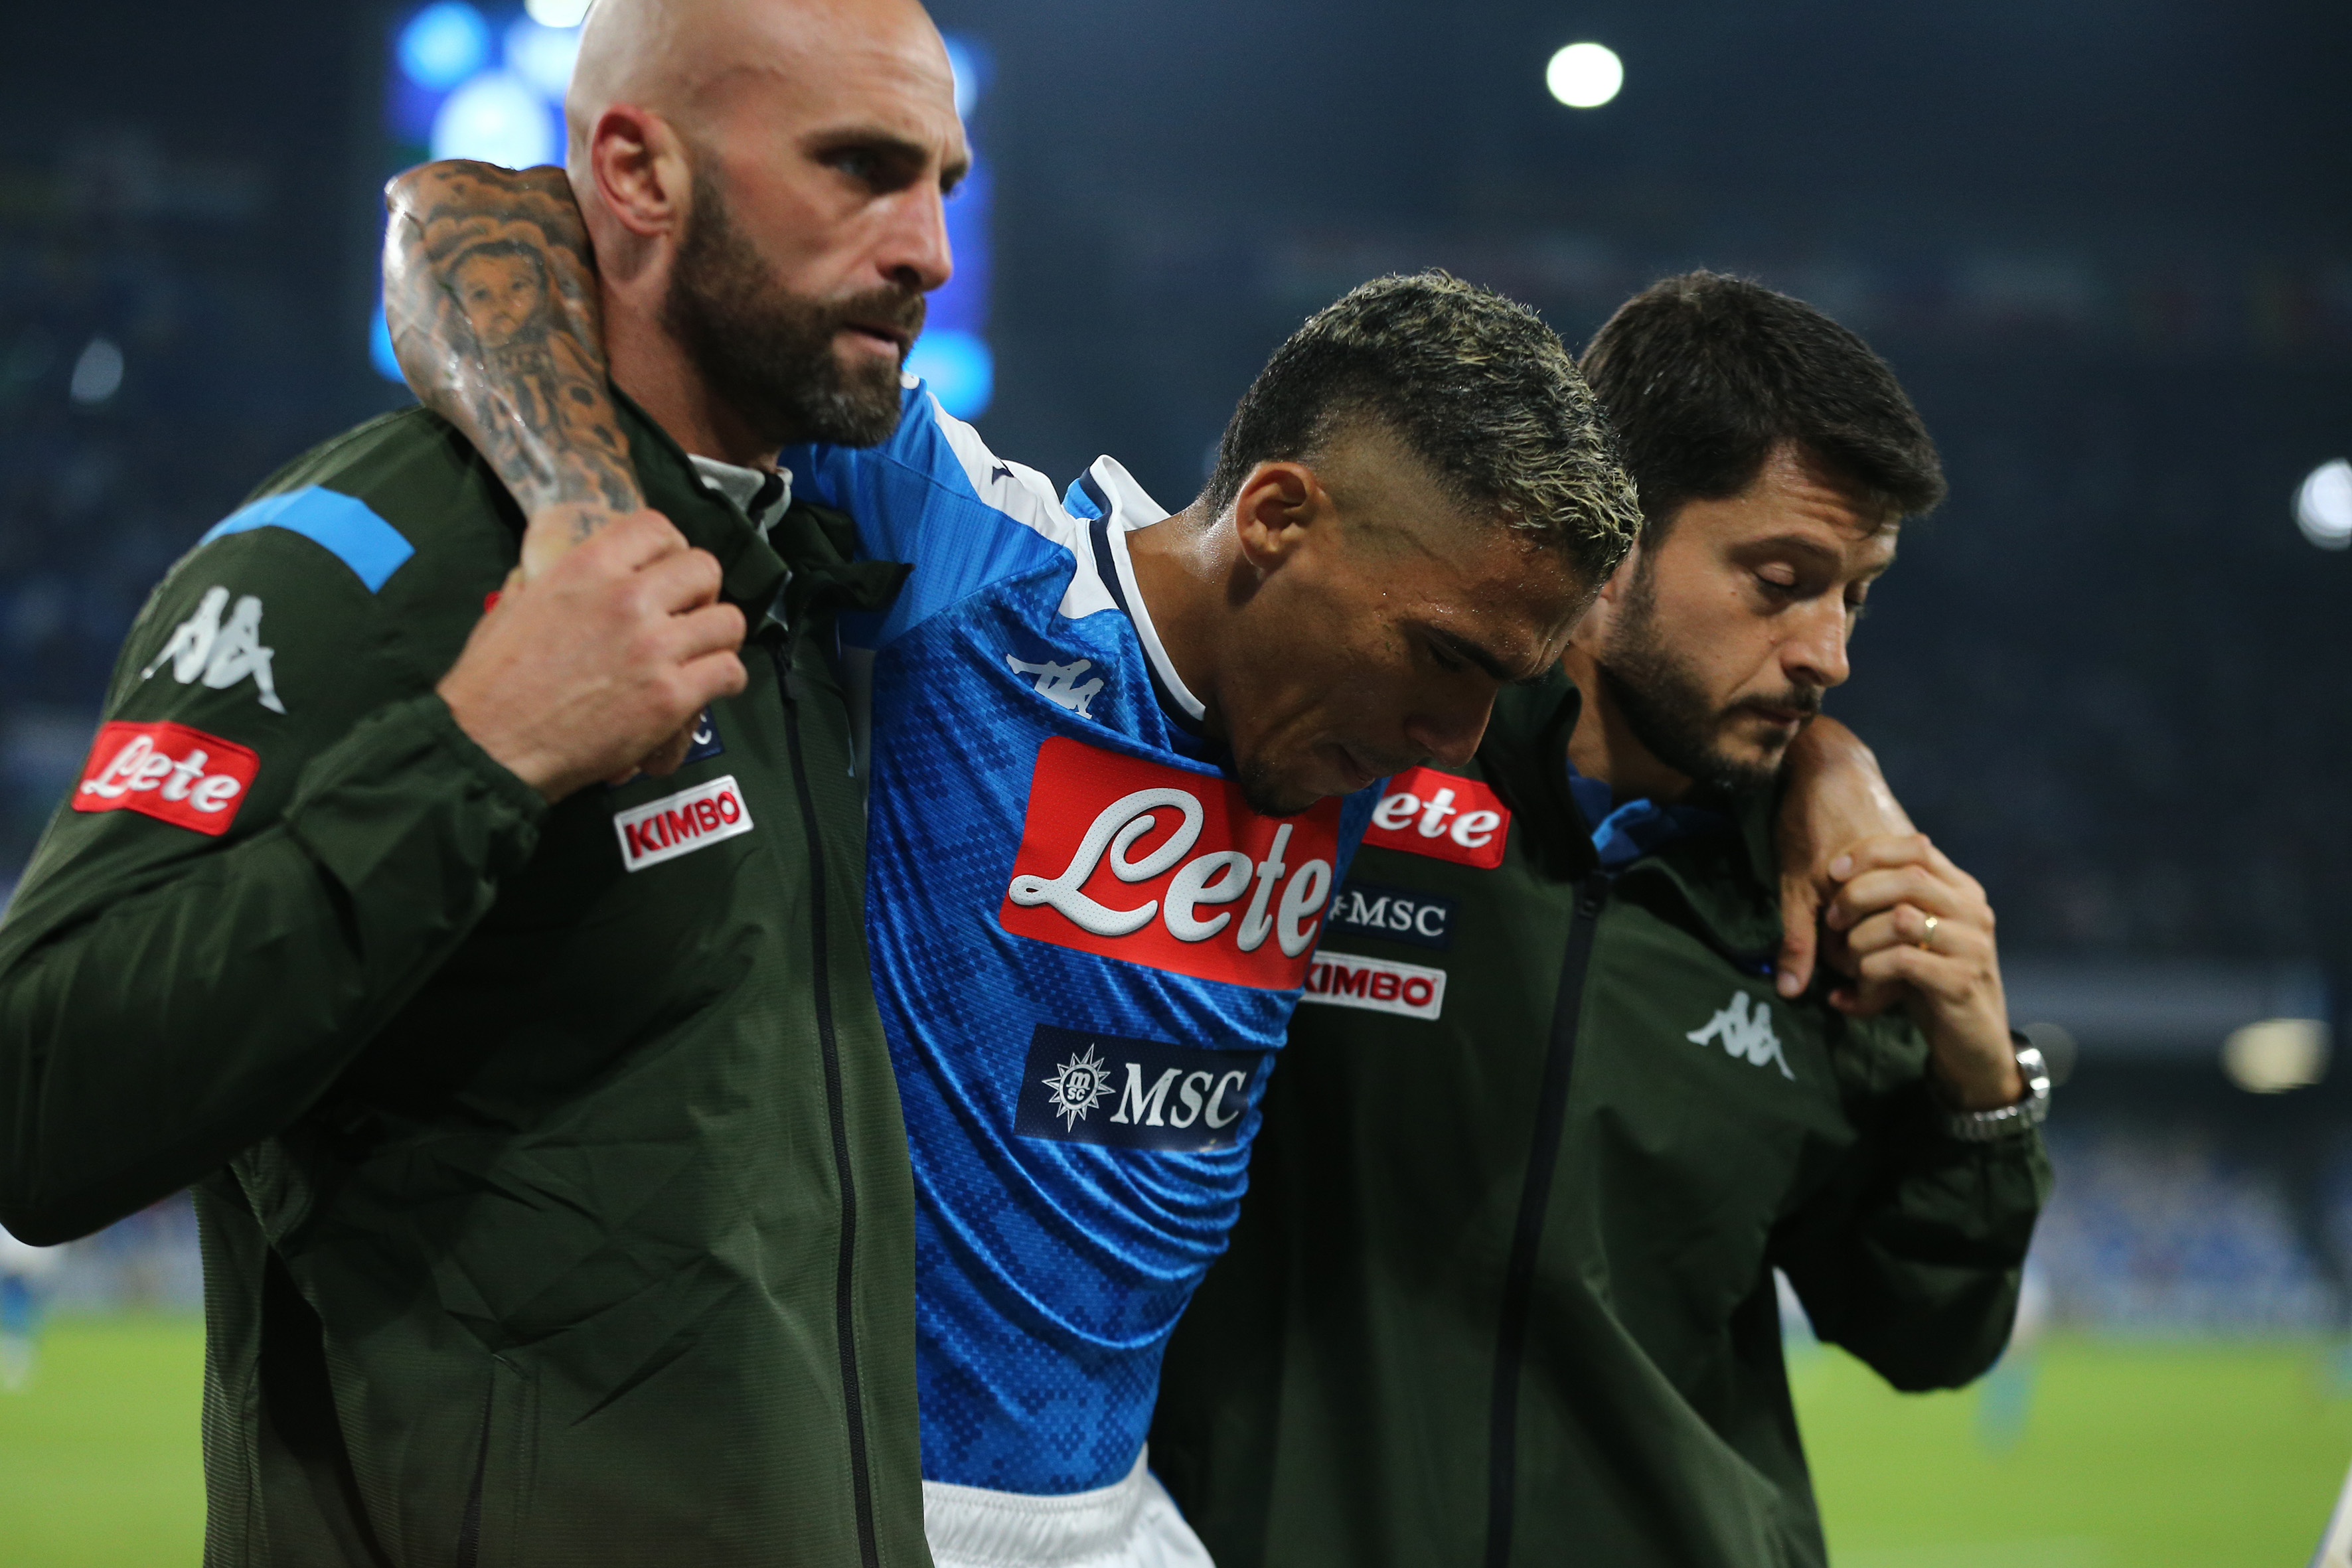 Napoli midfielder Allan out of action with knee injury against Atalanta